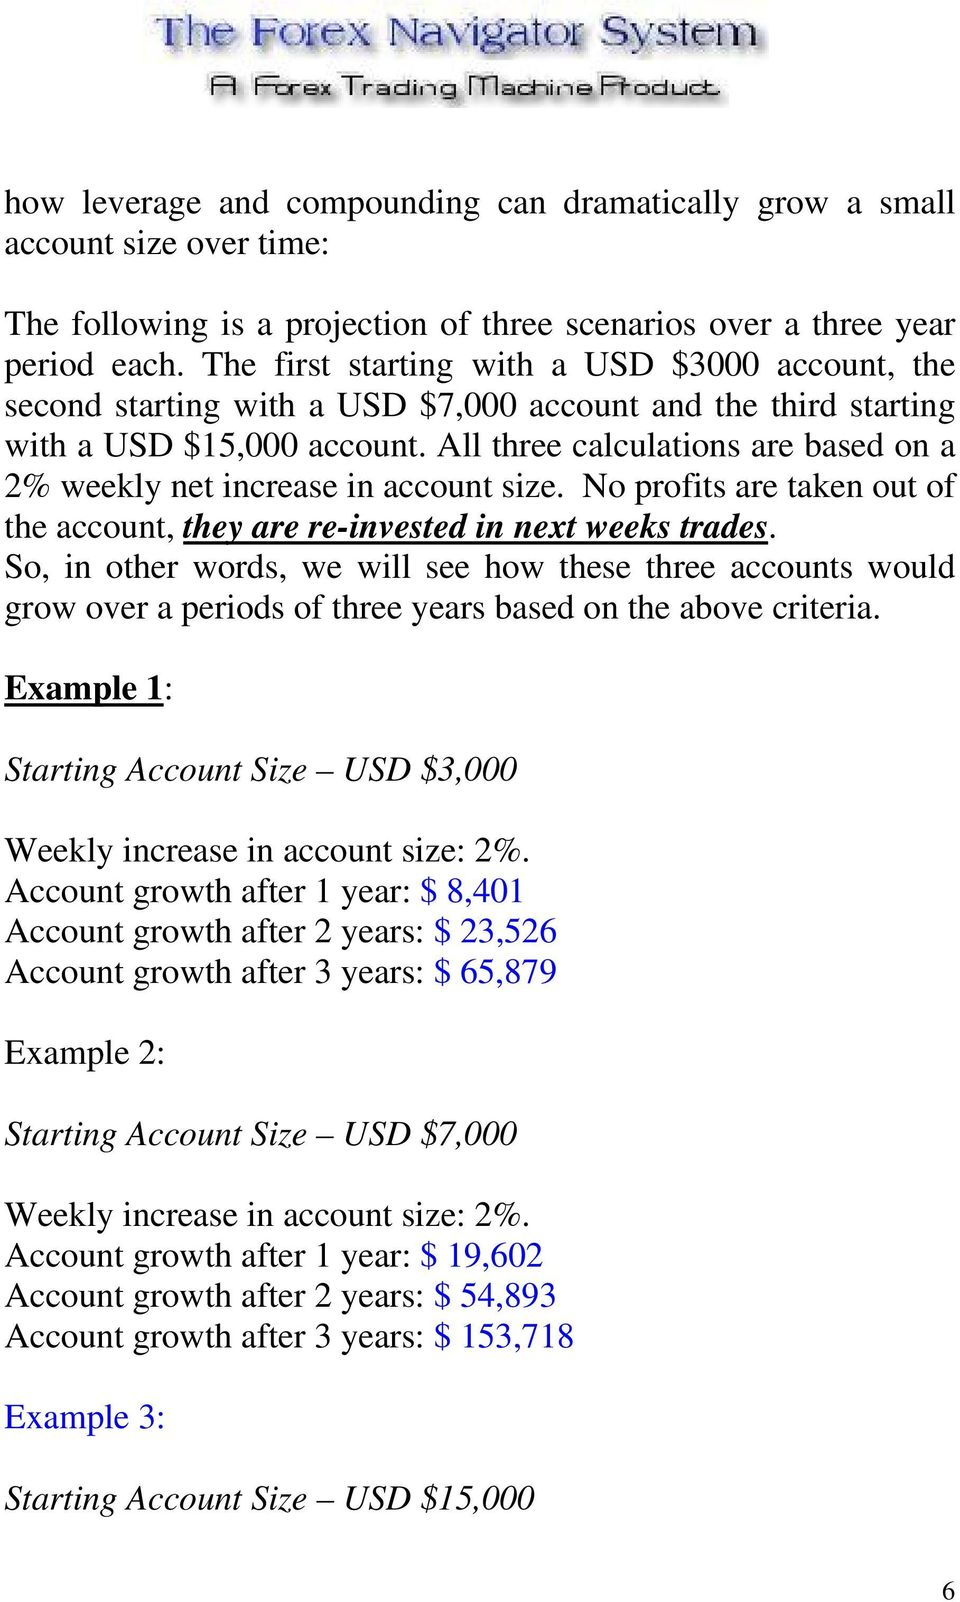 All three calculations are based on a 2% weekly net increase in account size. No profits are taken out of the account, they are re-invested in next weeks trades.